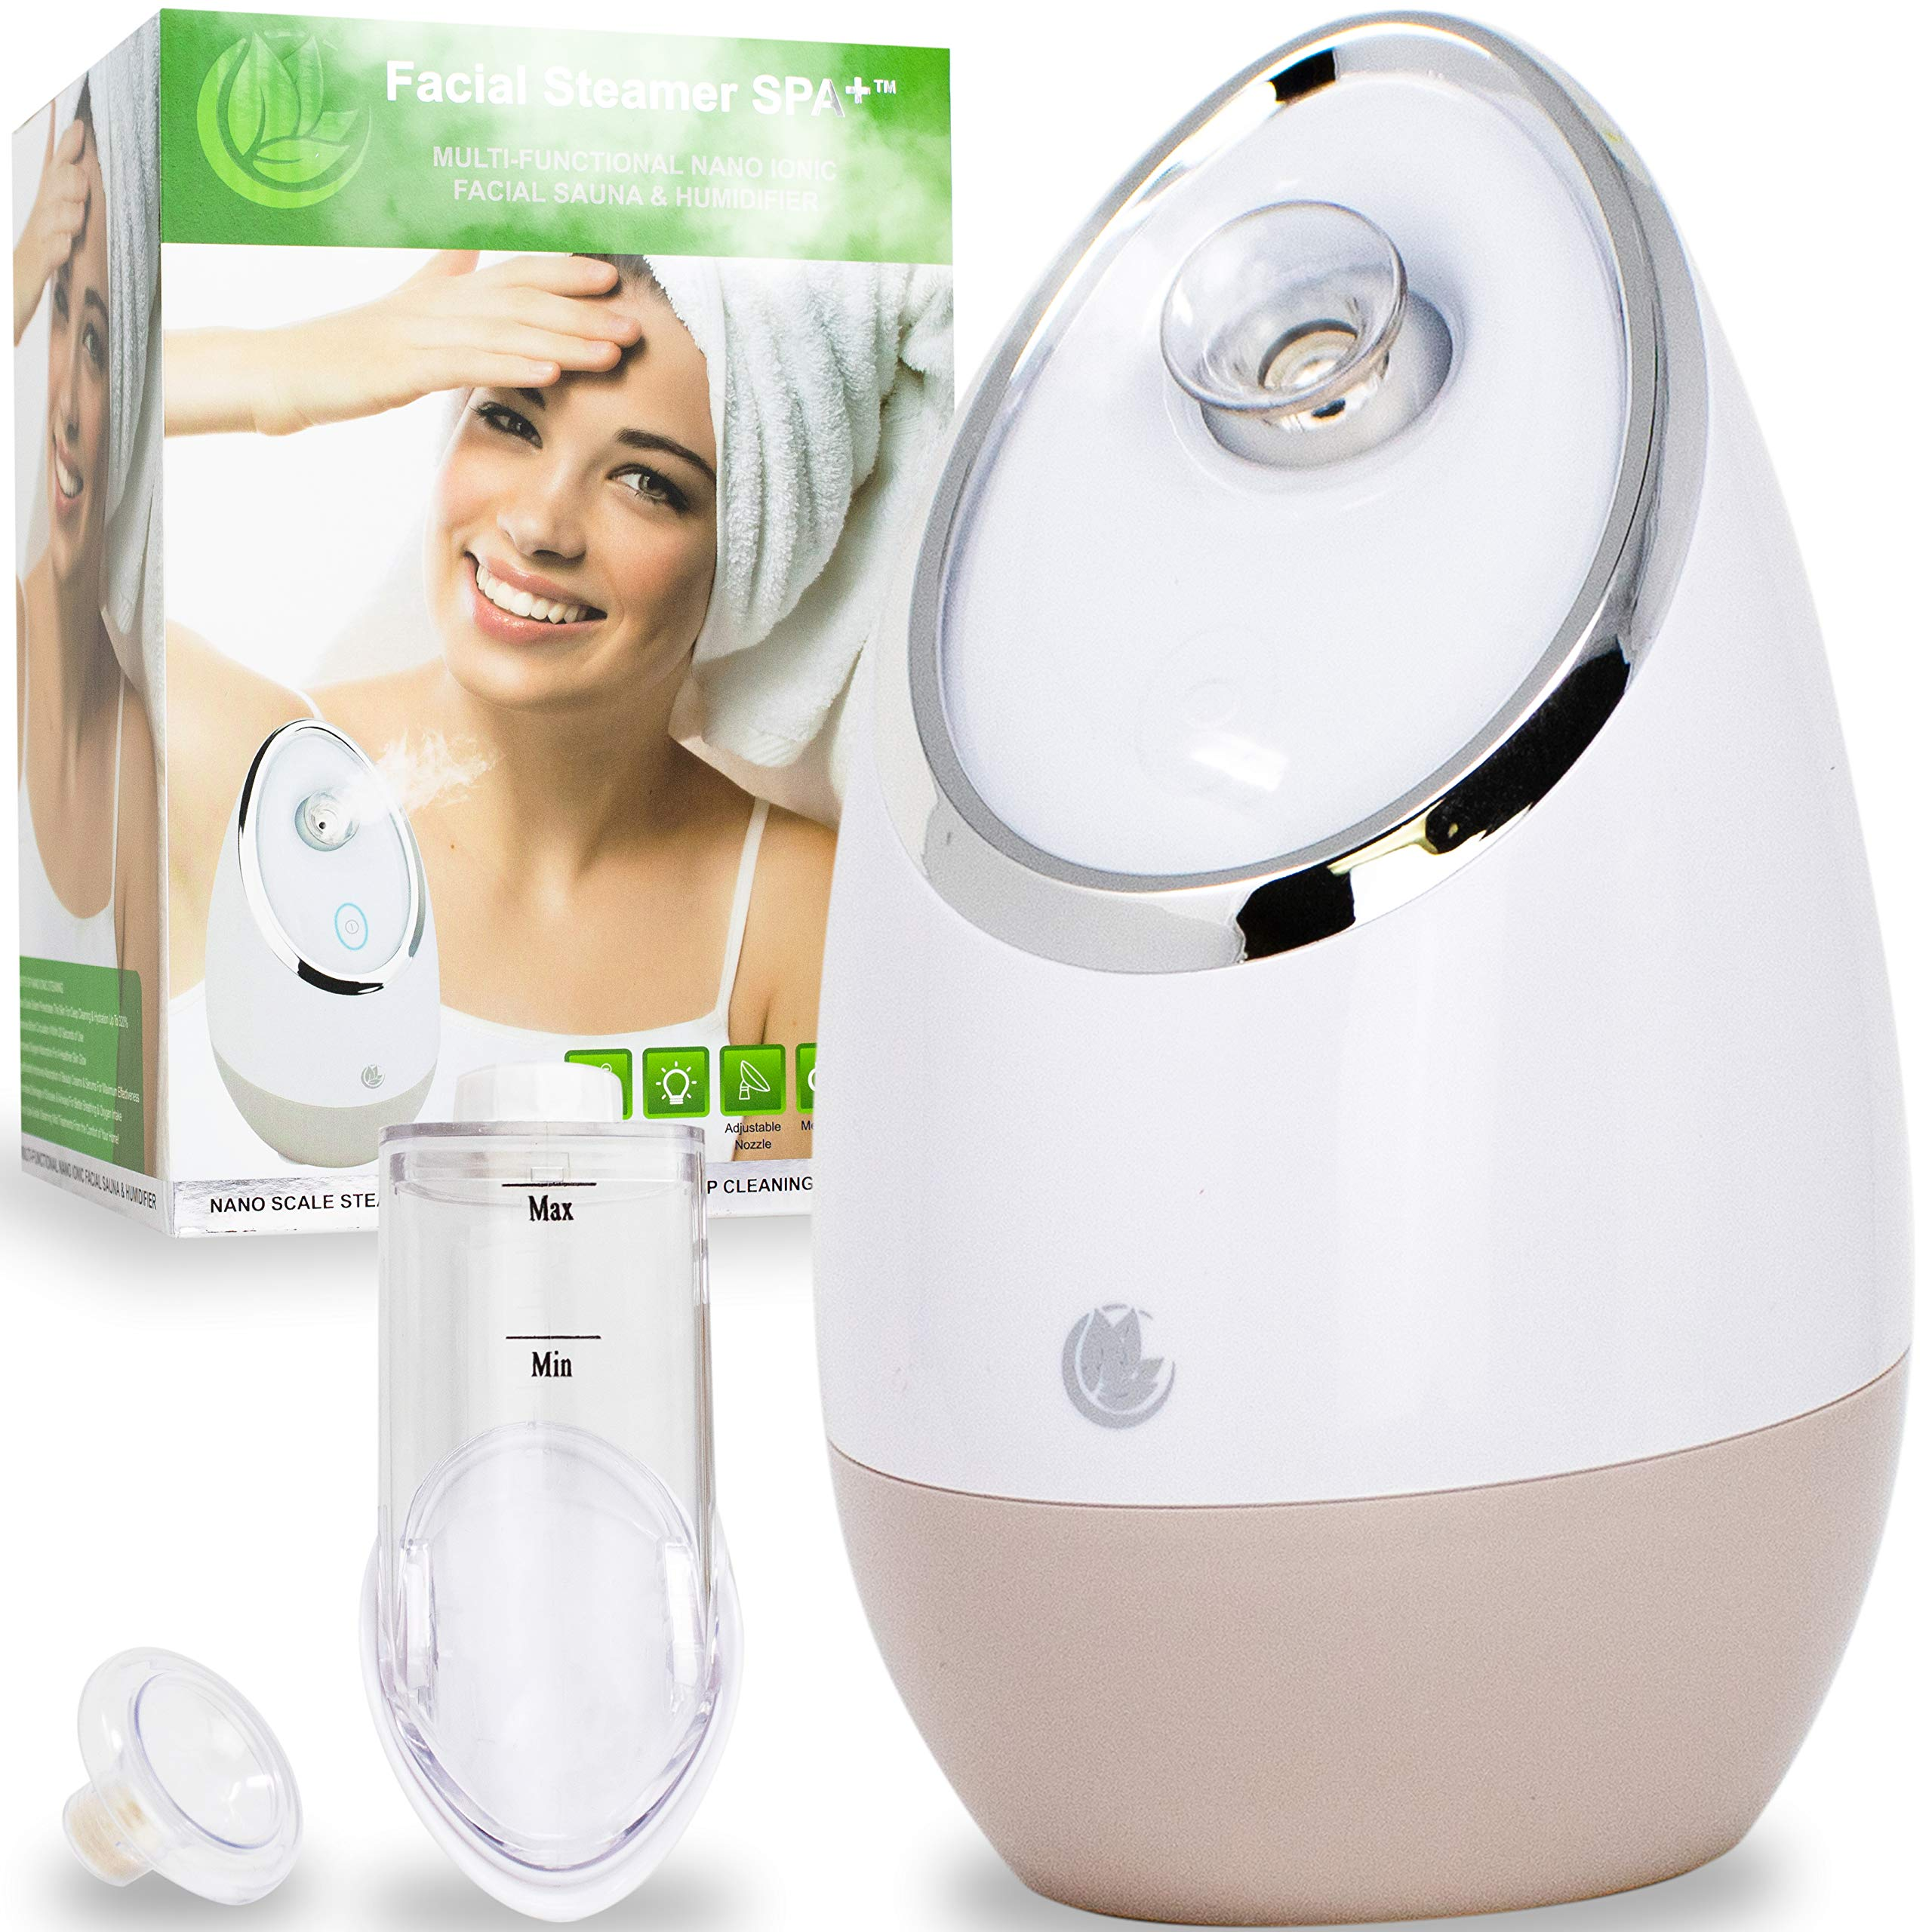 Facial Steamer SPA+ by Microderm GLO - Best Professional Nano Ionic Warm Mist, Home Face Sauna, Portable Humidifier Machine, Deep Clean & Tighten Skin, Daily Hydration for Maximum Serum Absorption